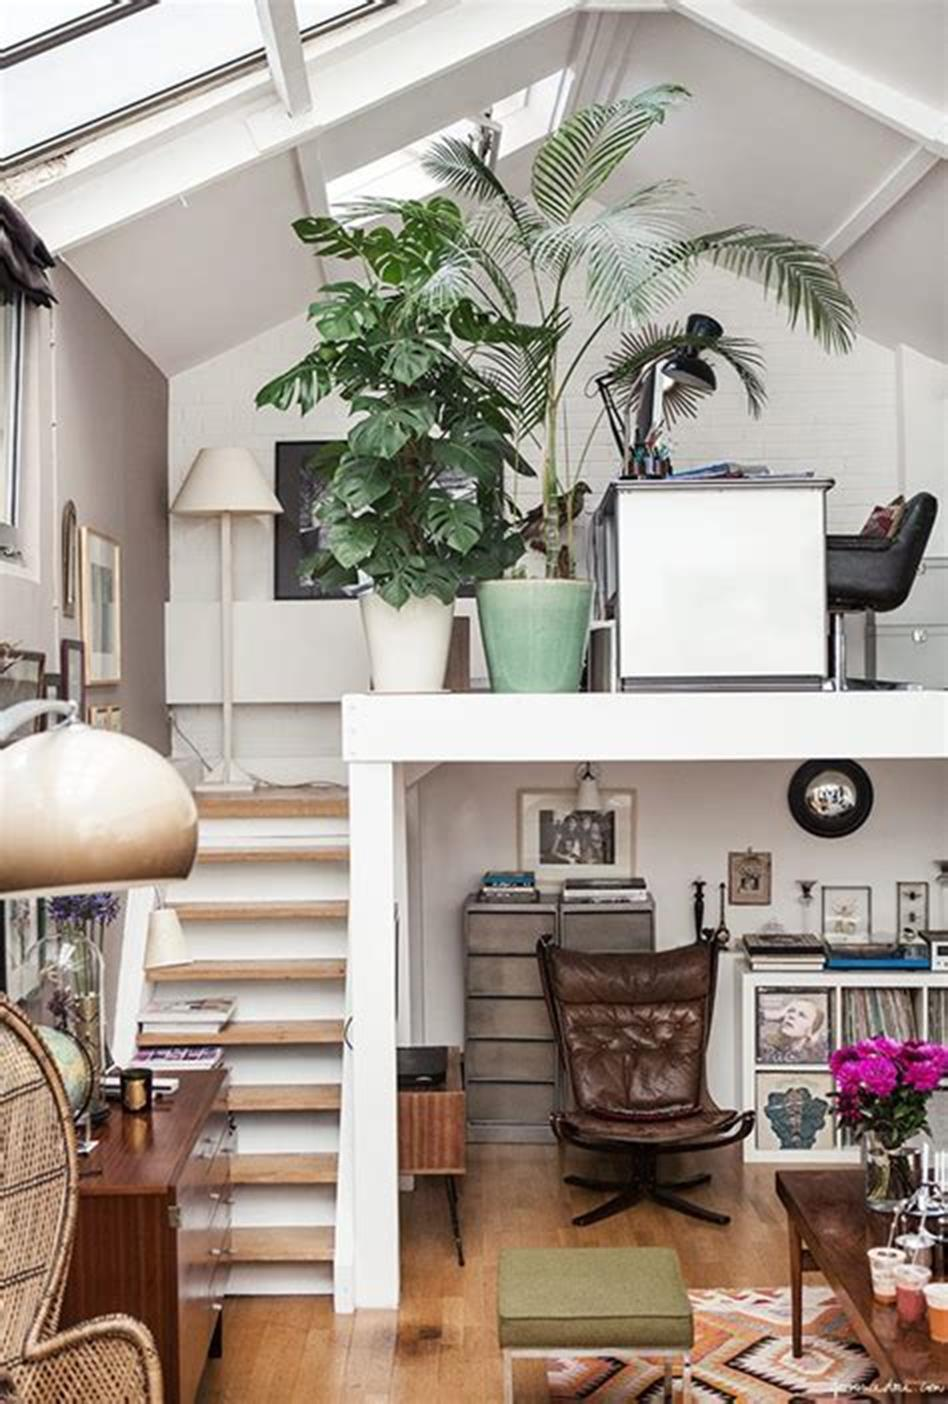 50 Best Small Space Office Decorating Ideas On a Budget 2019 33